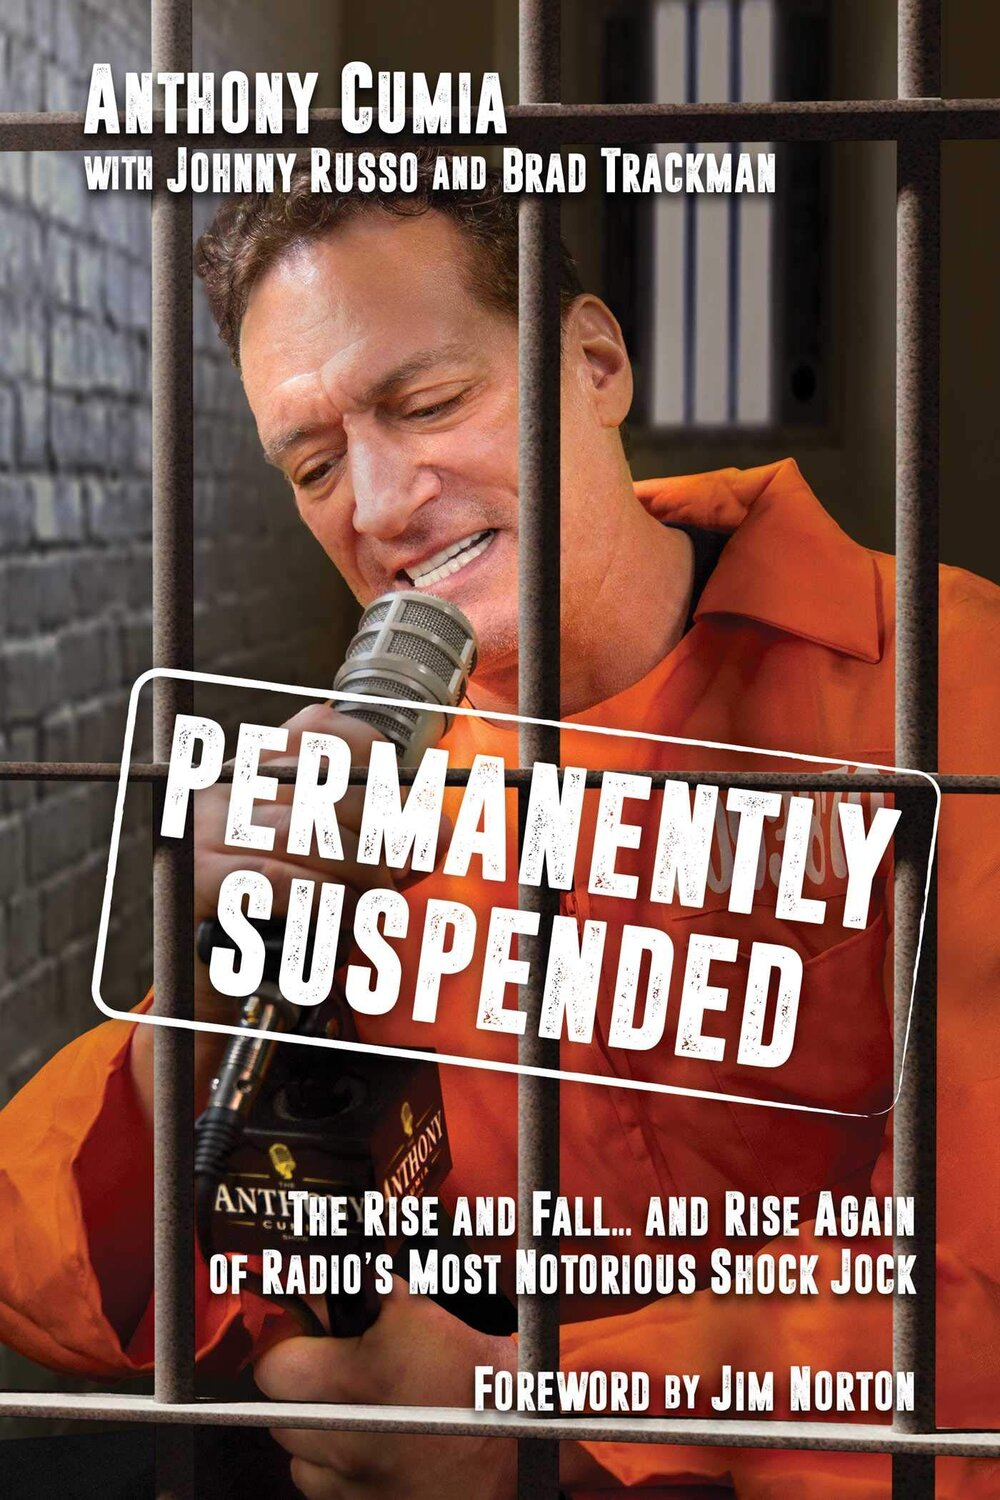 Permanently Suspended: The Rise and Fall...and Rise Again of Radio's Most Notorious Shock Jock by Anthony Cumia